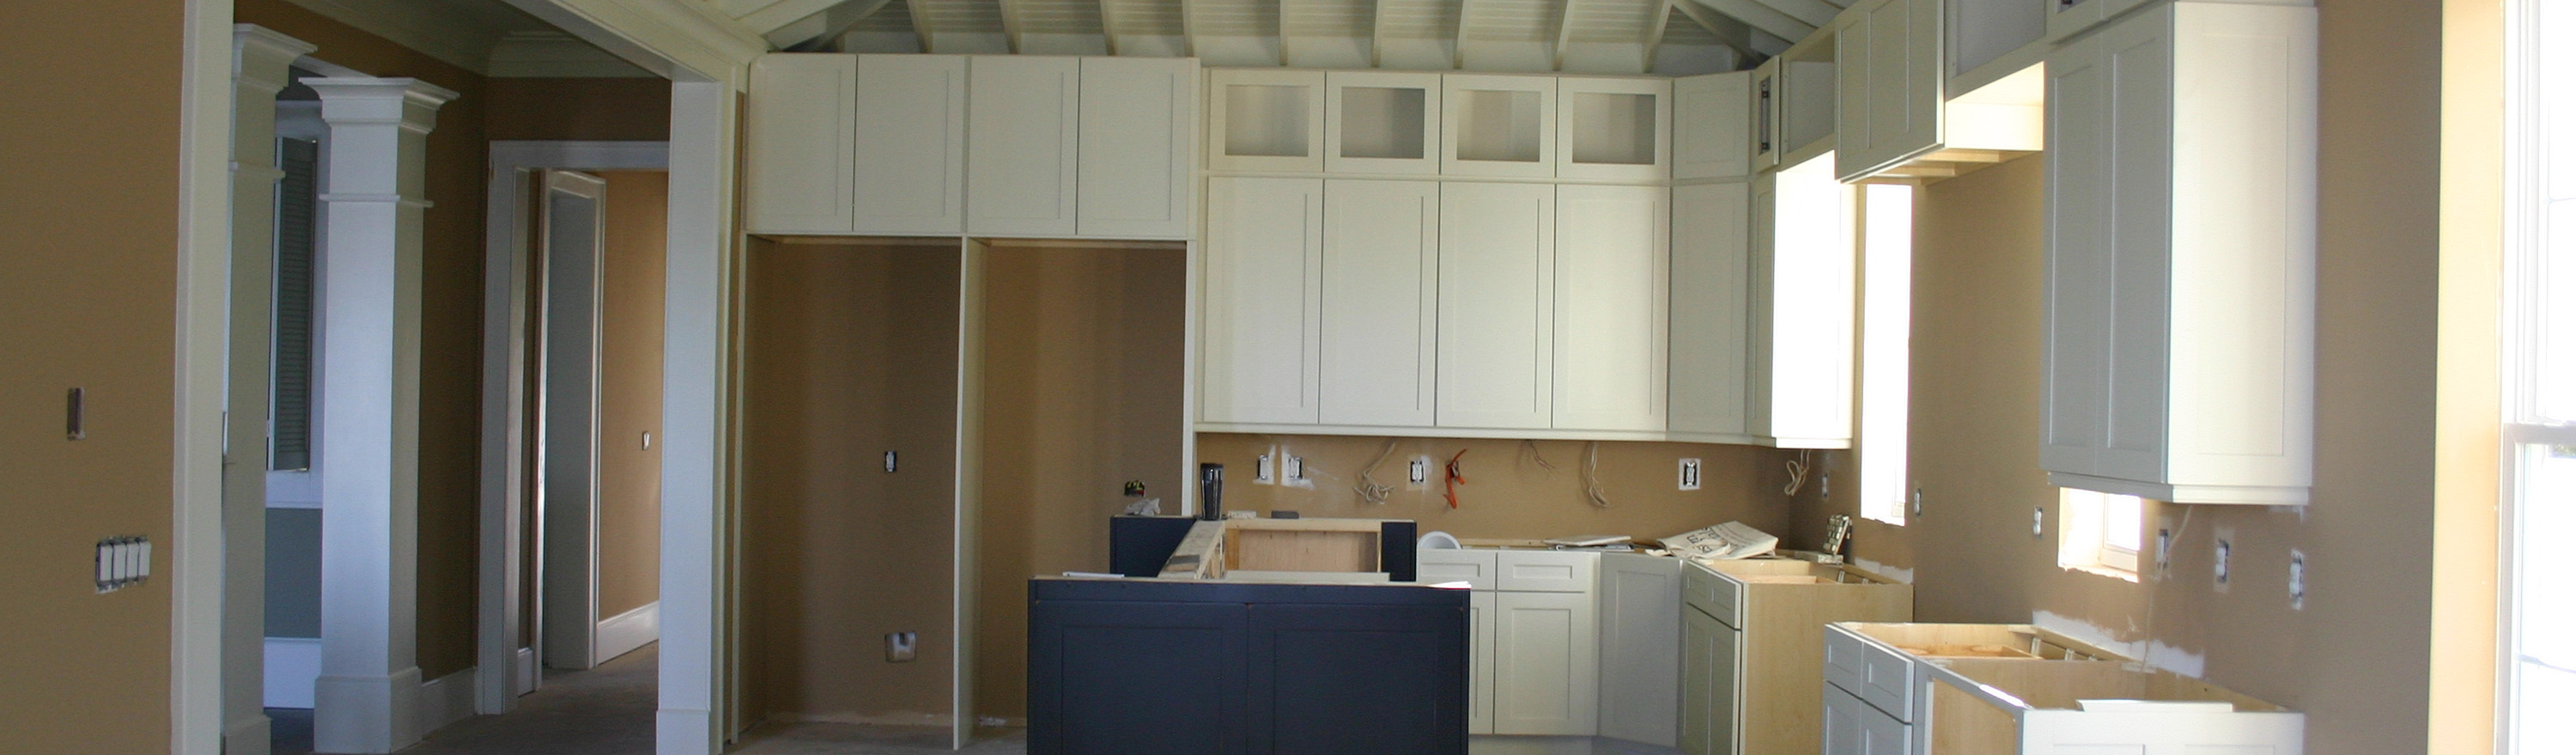 House Remodeling Contractors Near Me Room Addition Contractors Atlantic Beach Home Remodeling